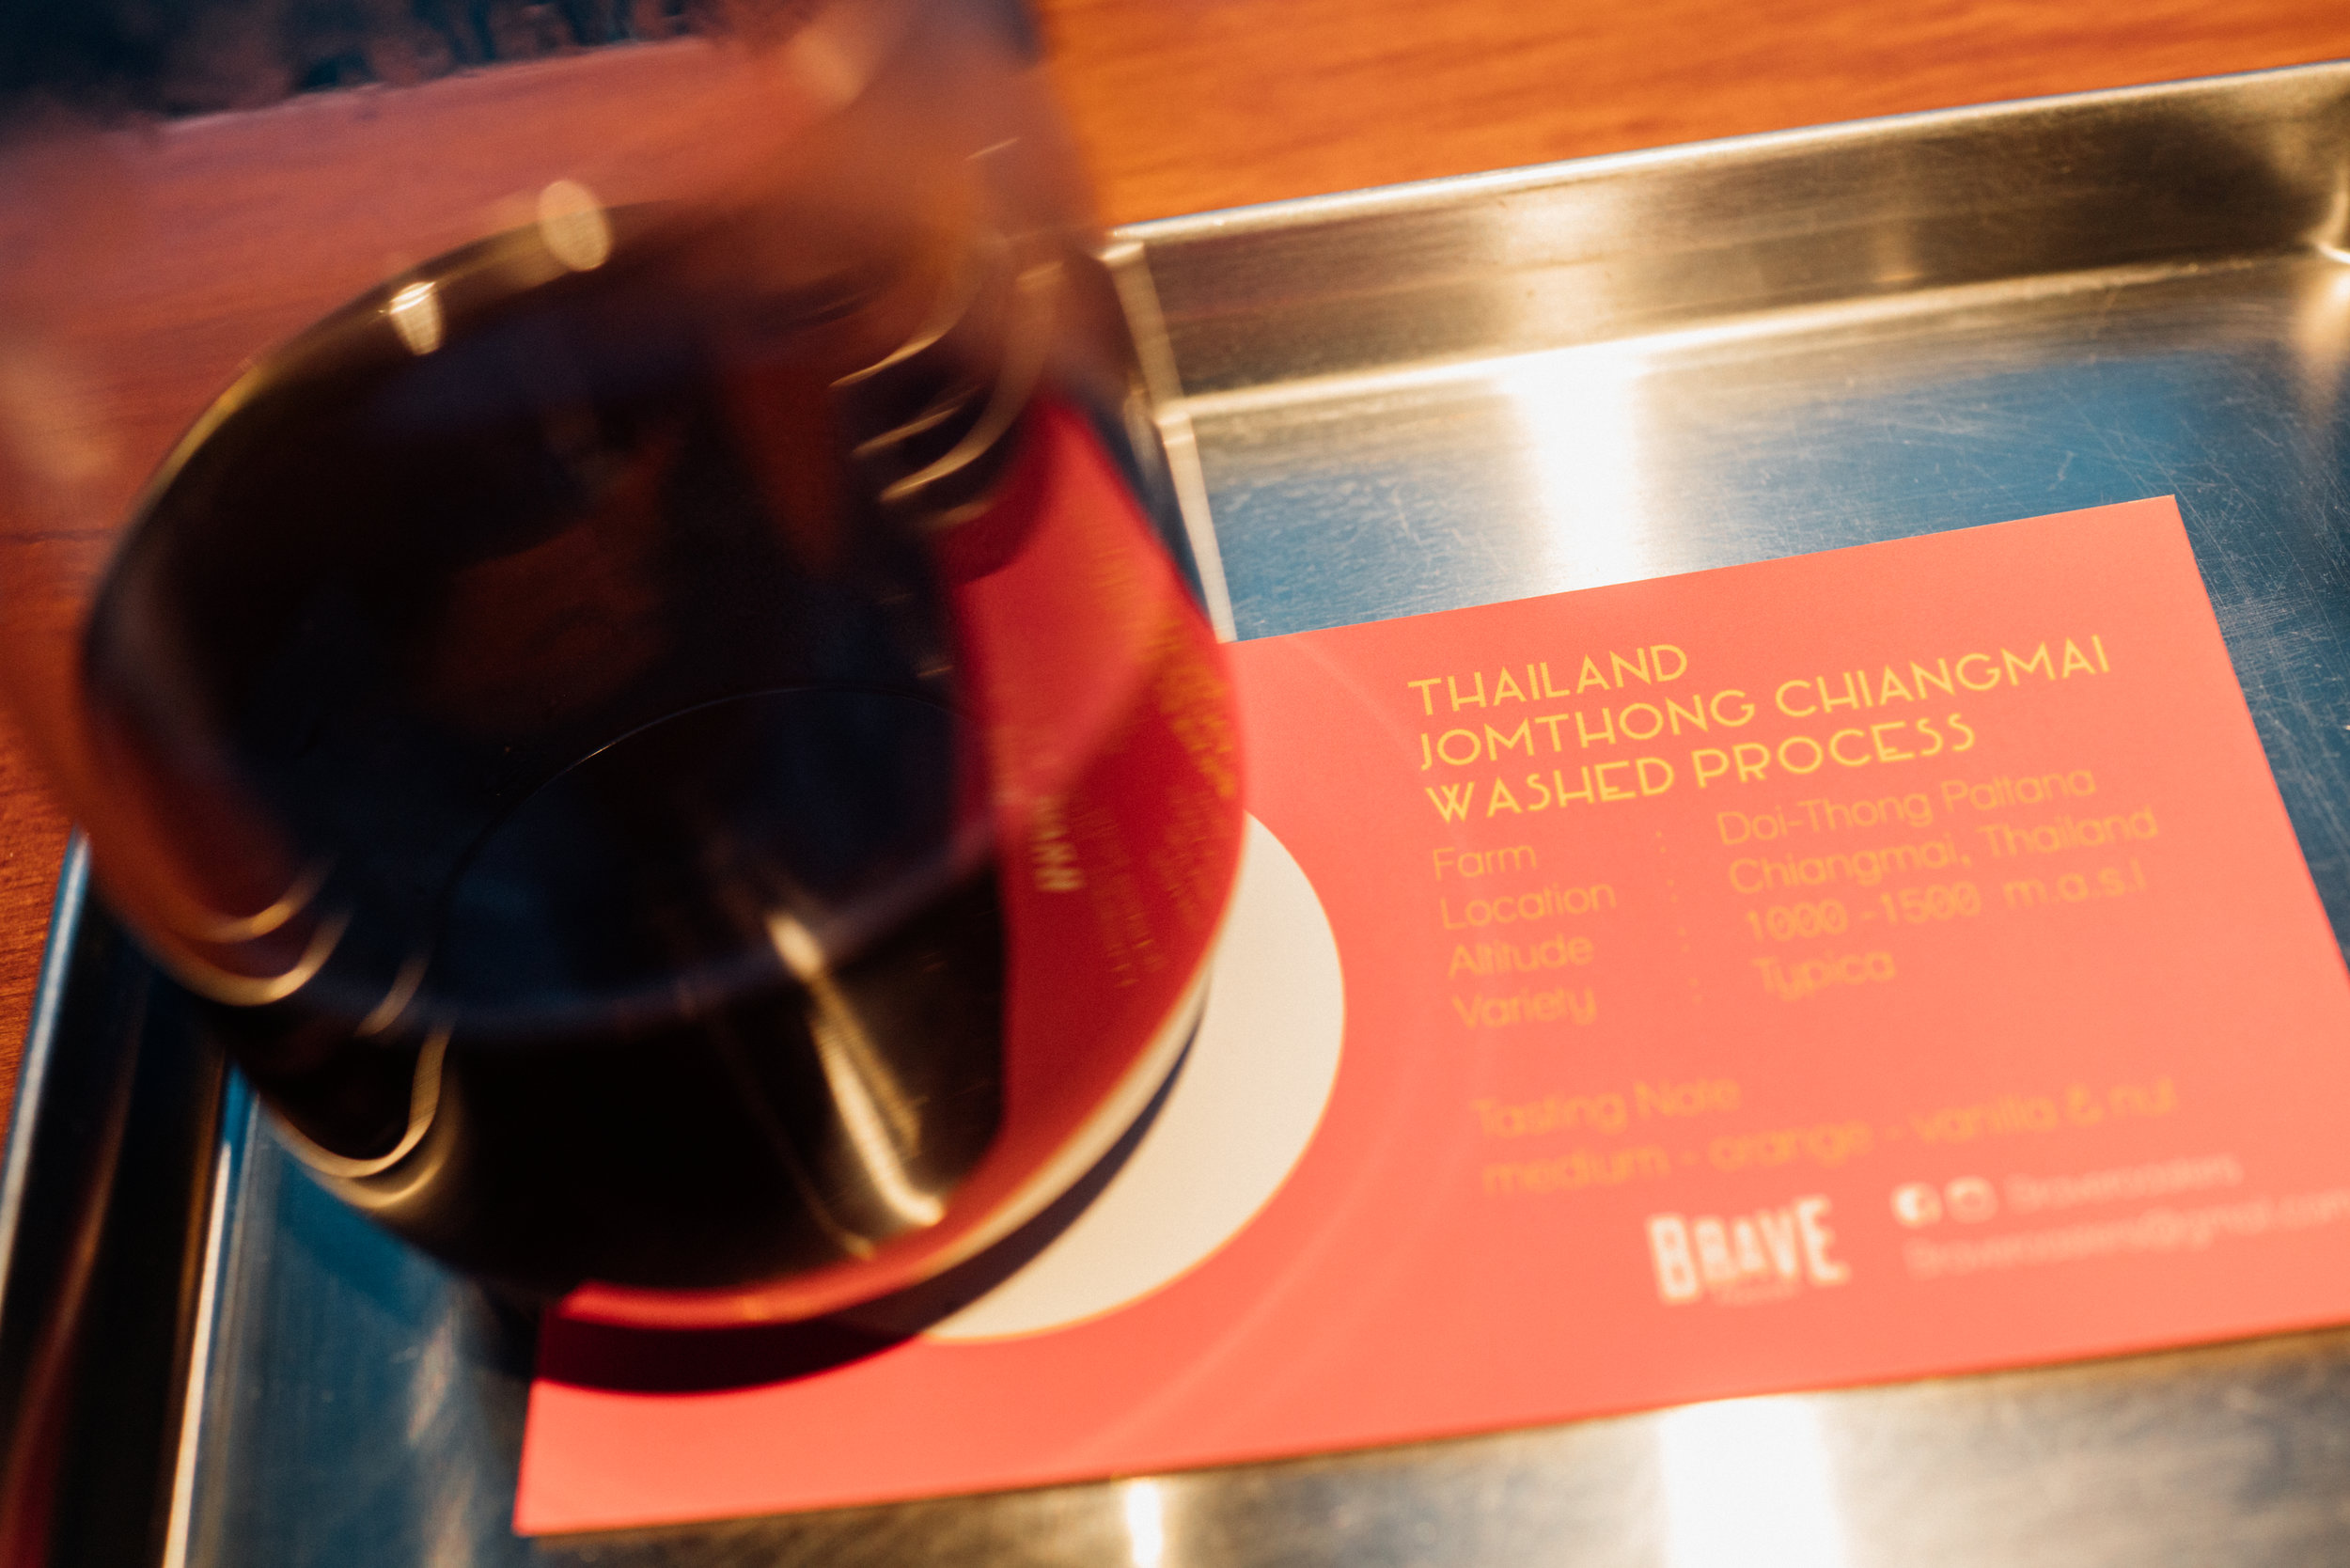 A pourover at I+D, with beans from Brave Roasters